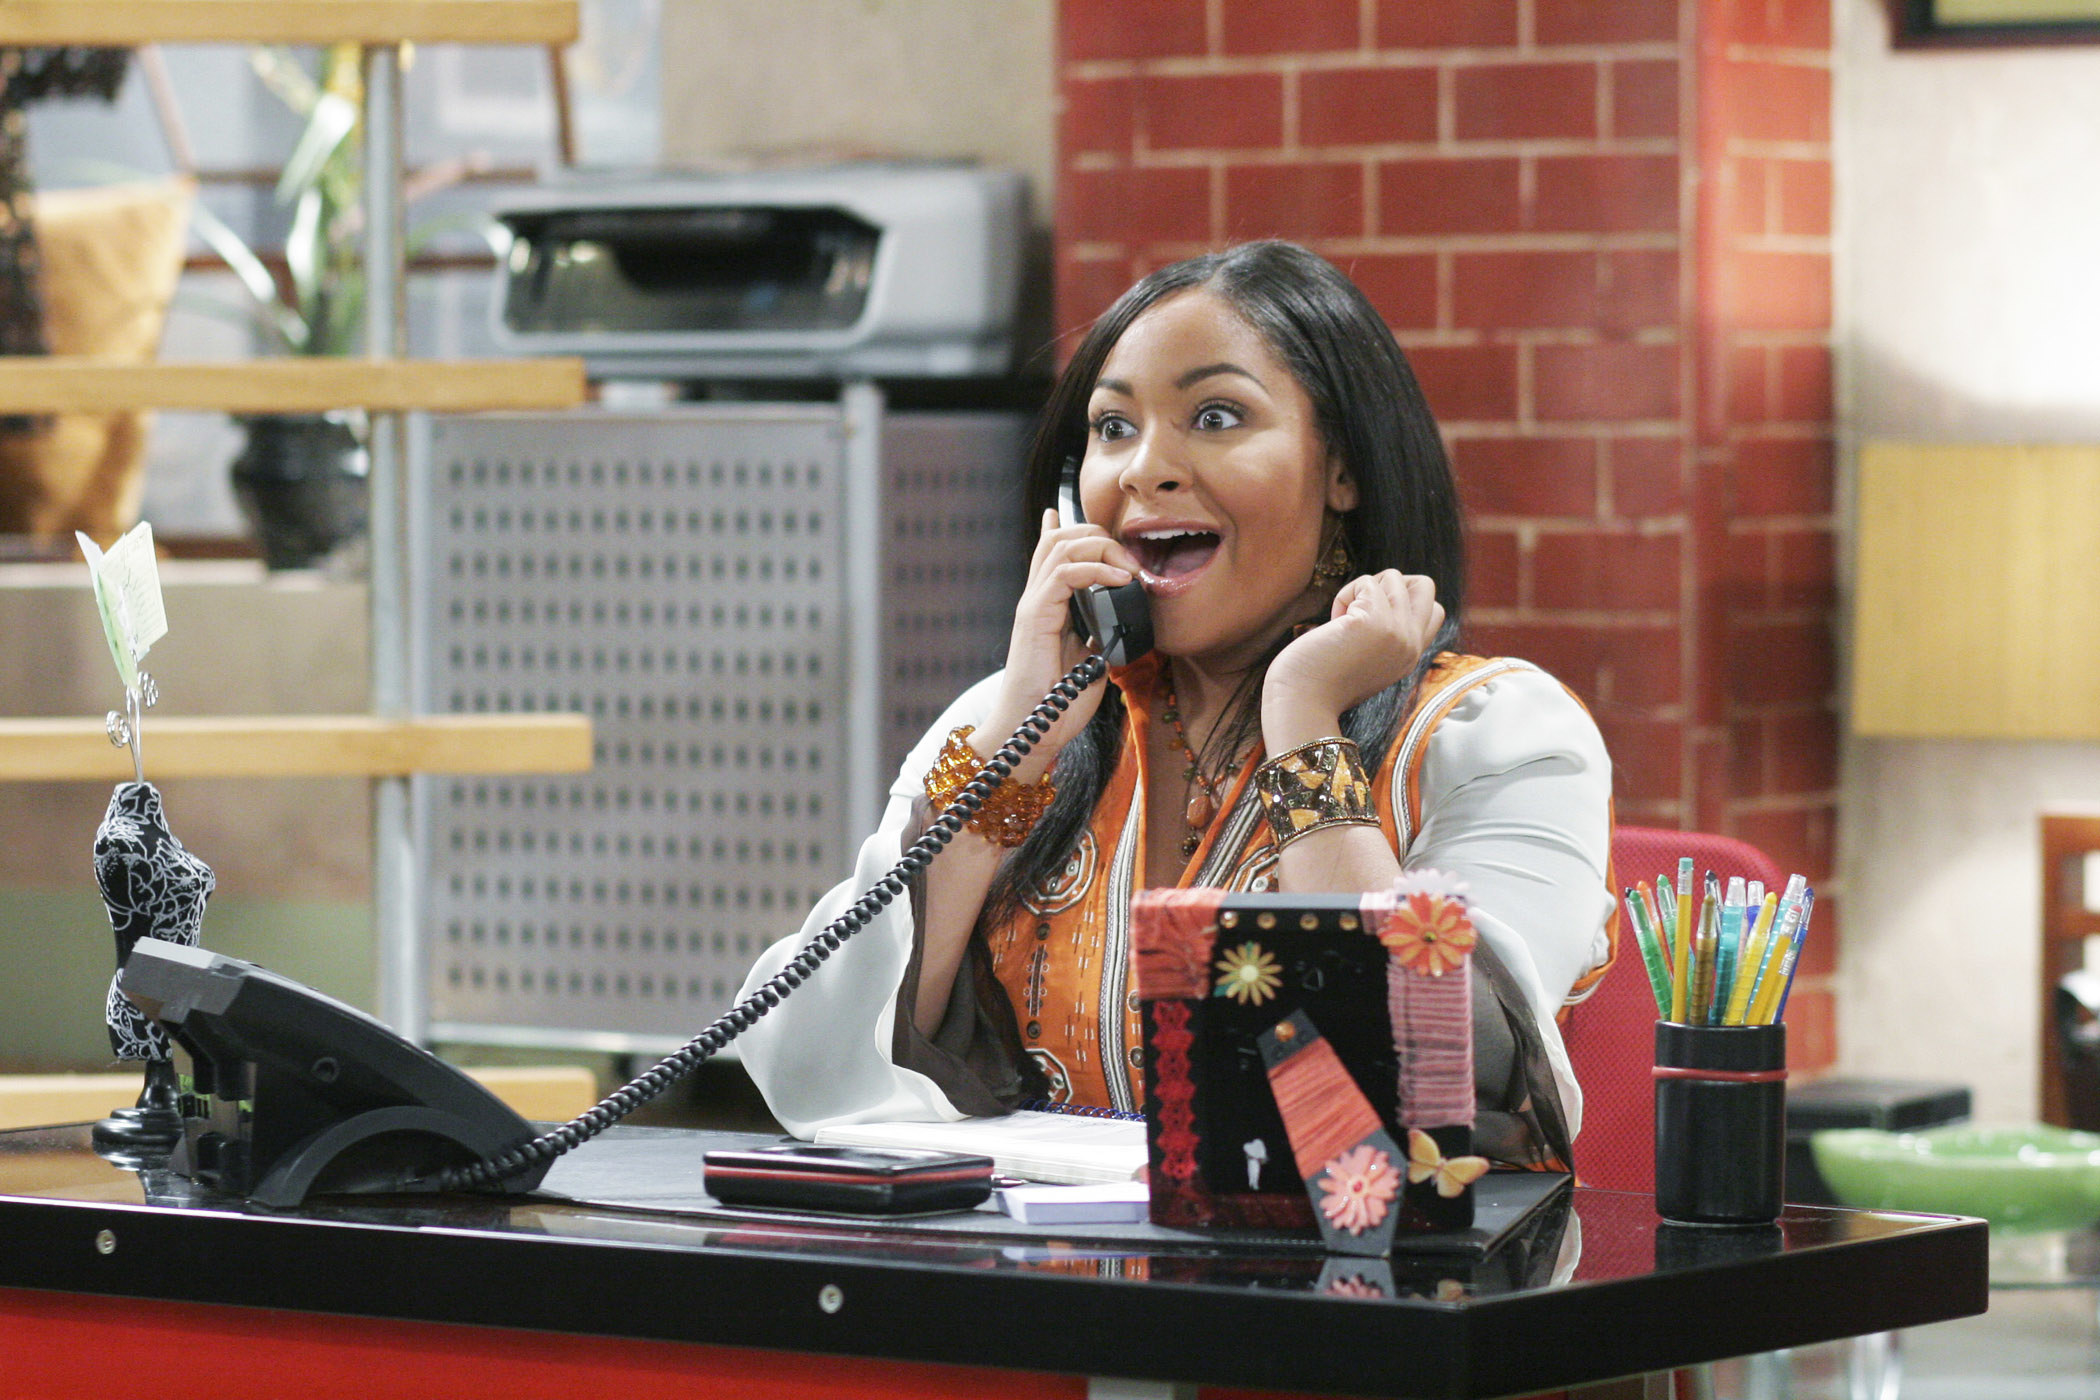 Raven excitedly talks on the phone during a scene on the show